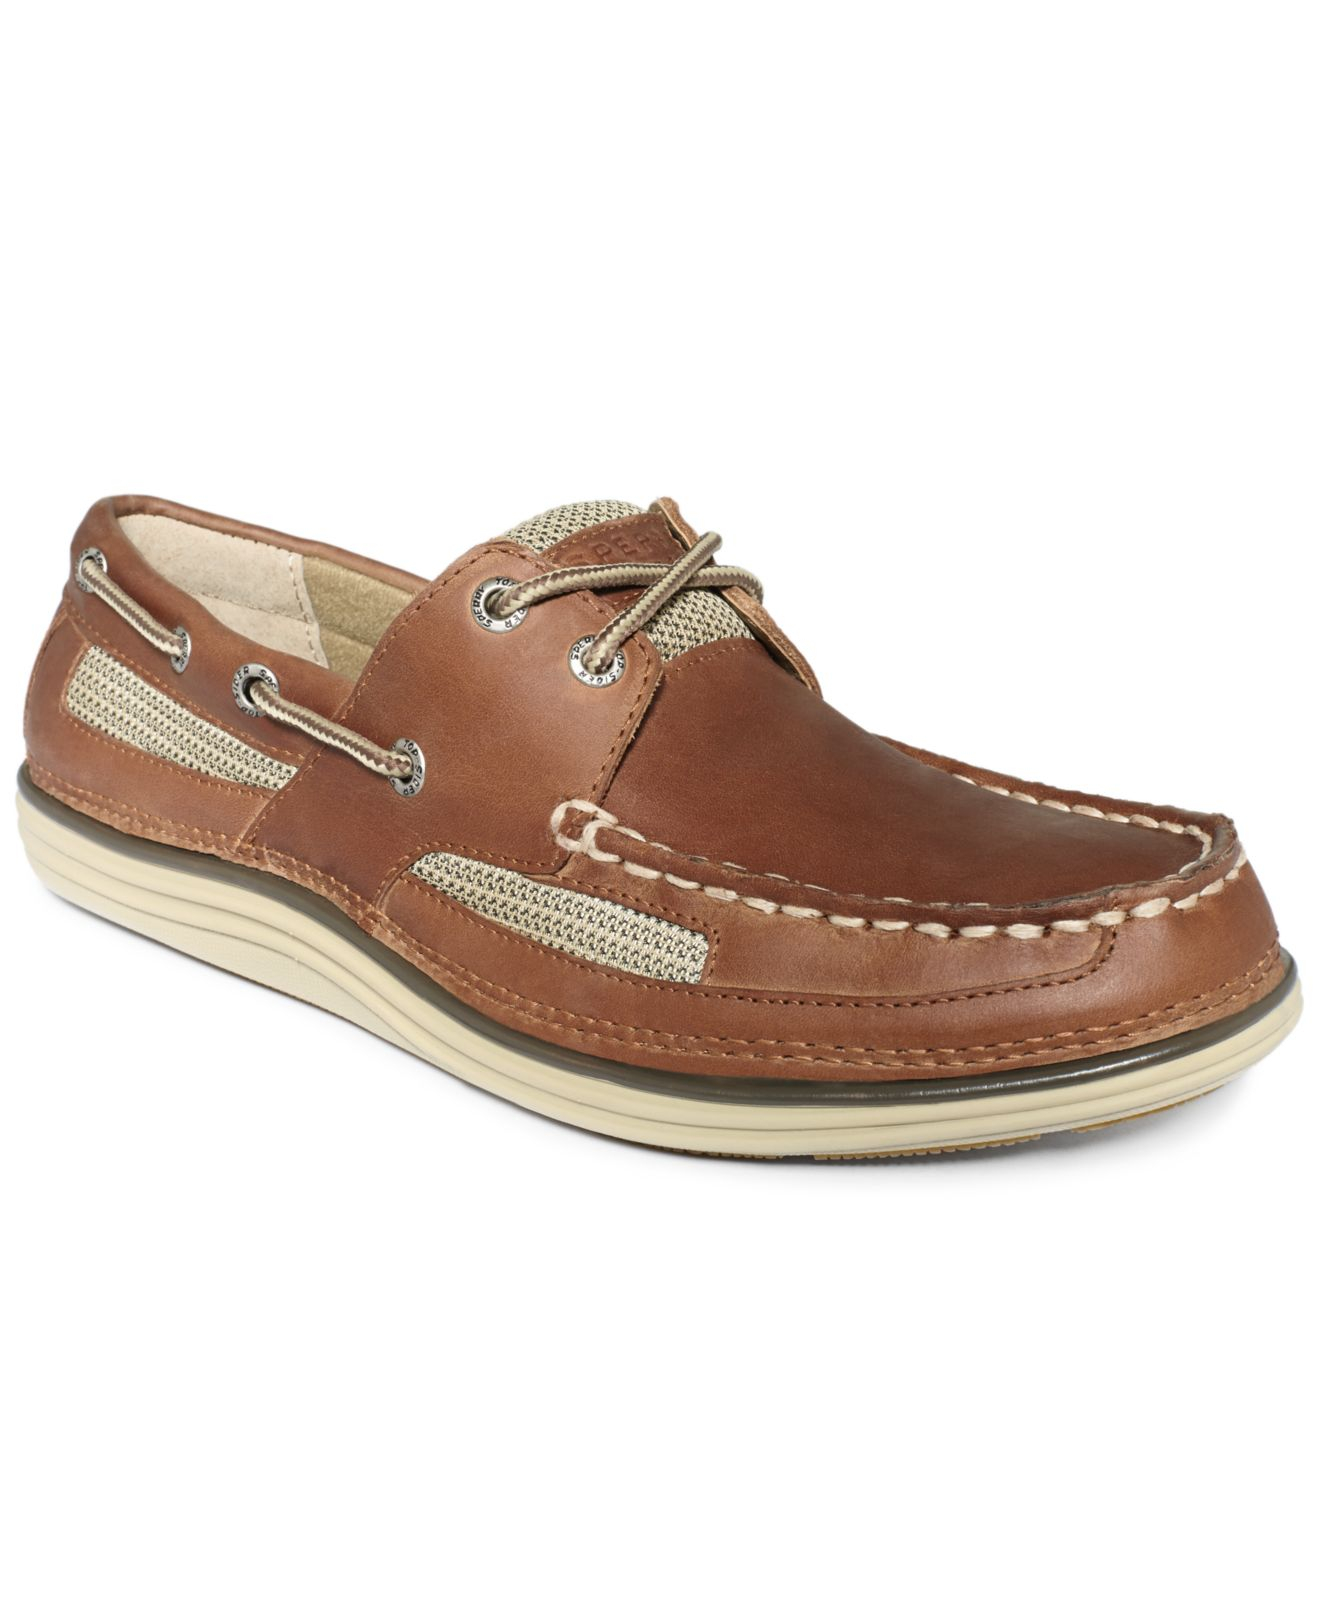 Brown Or Tan Boat Shoes